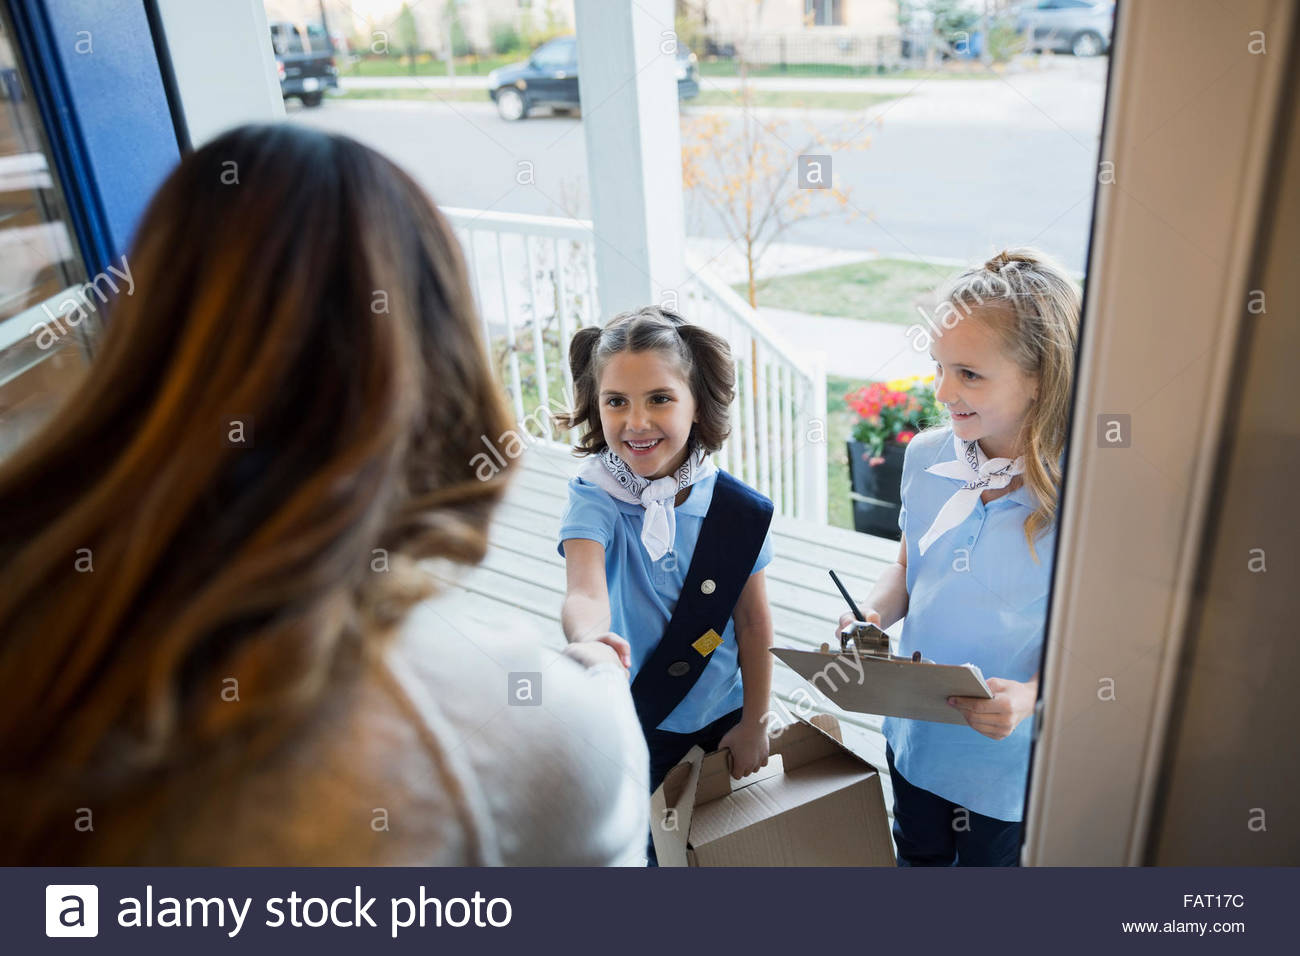 Girl scouts selling cookies woman at front door - Stock Image